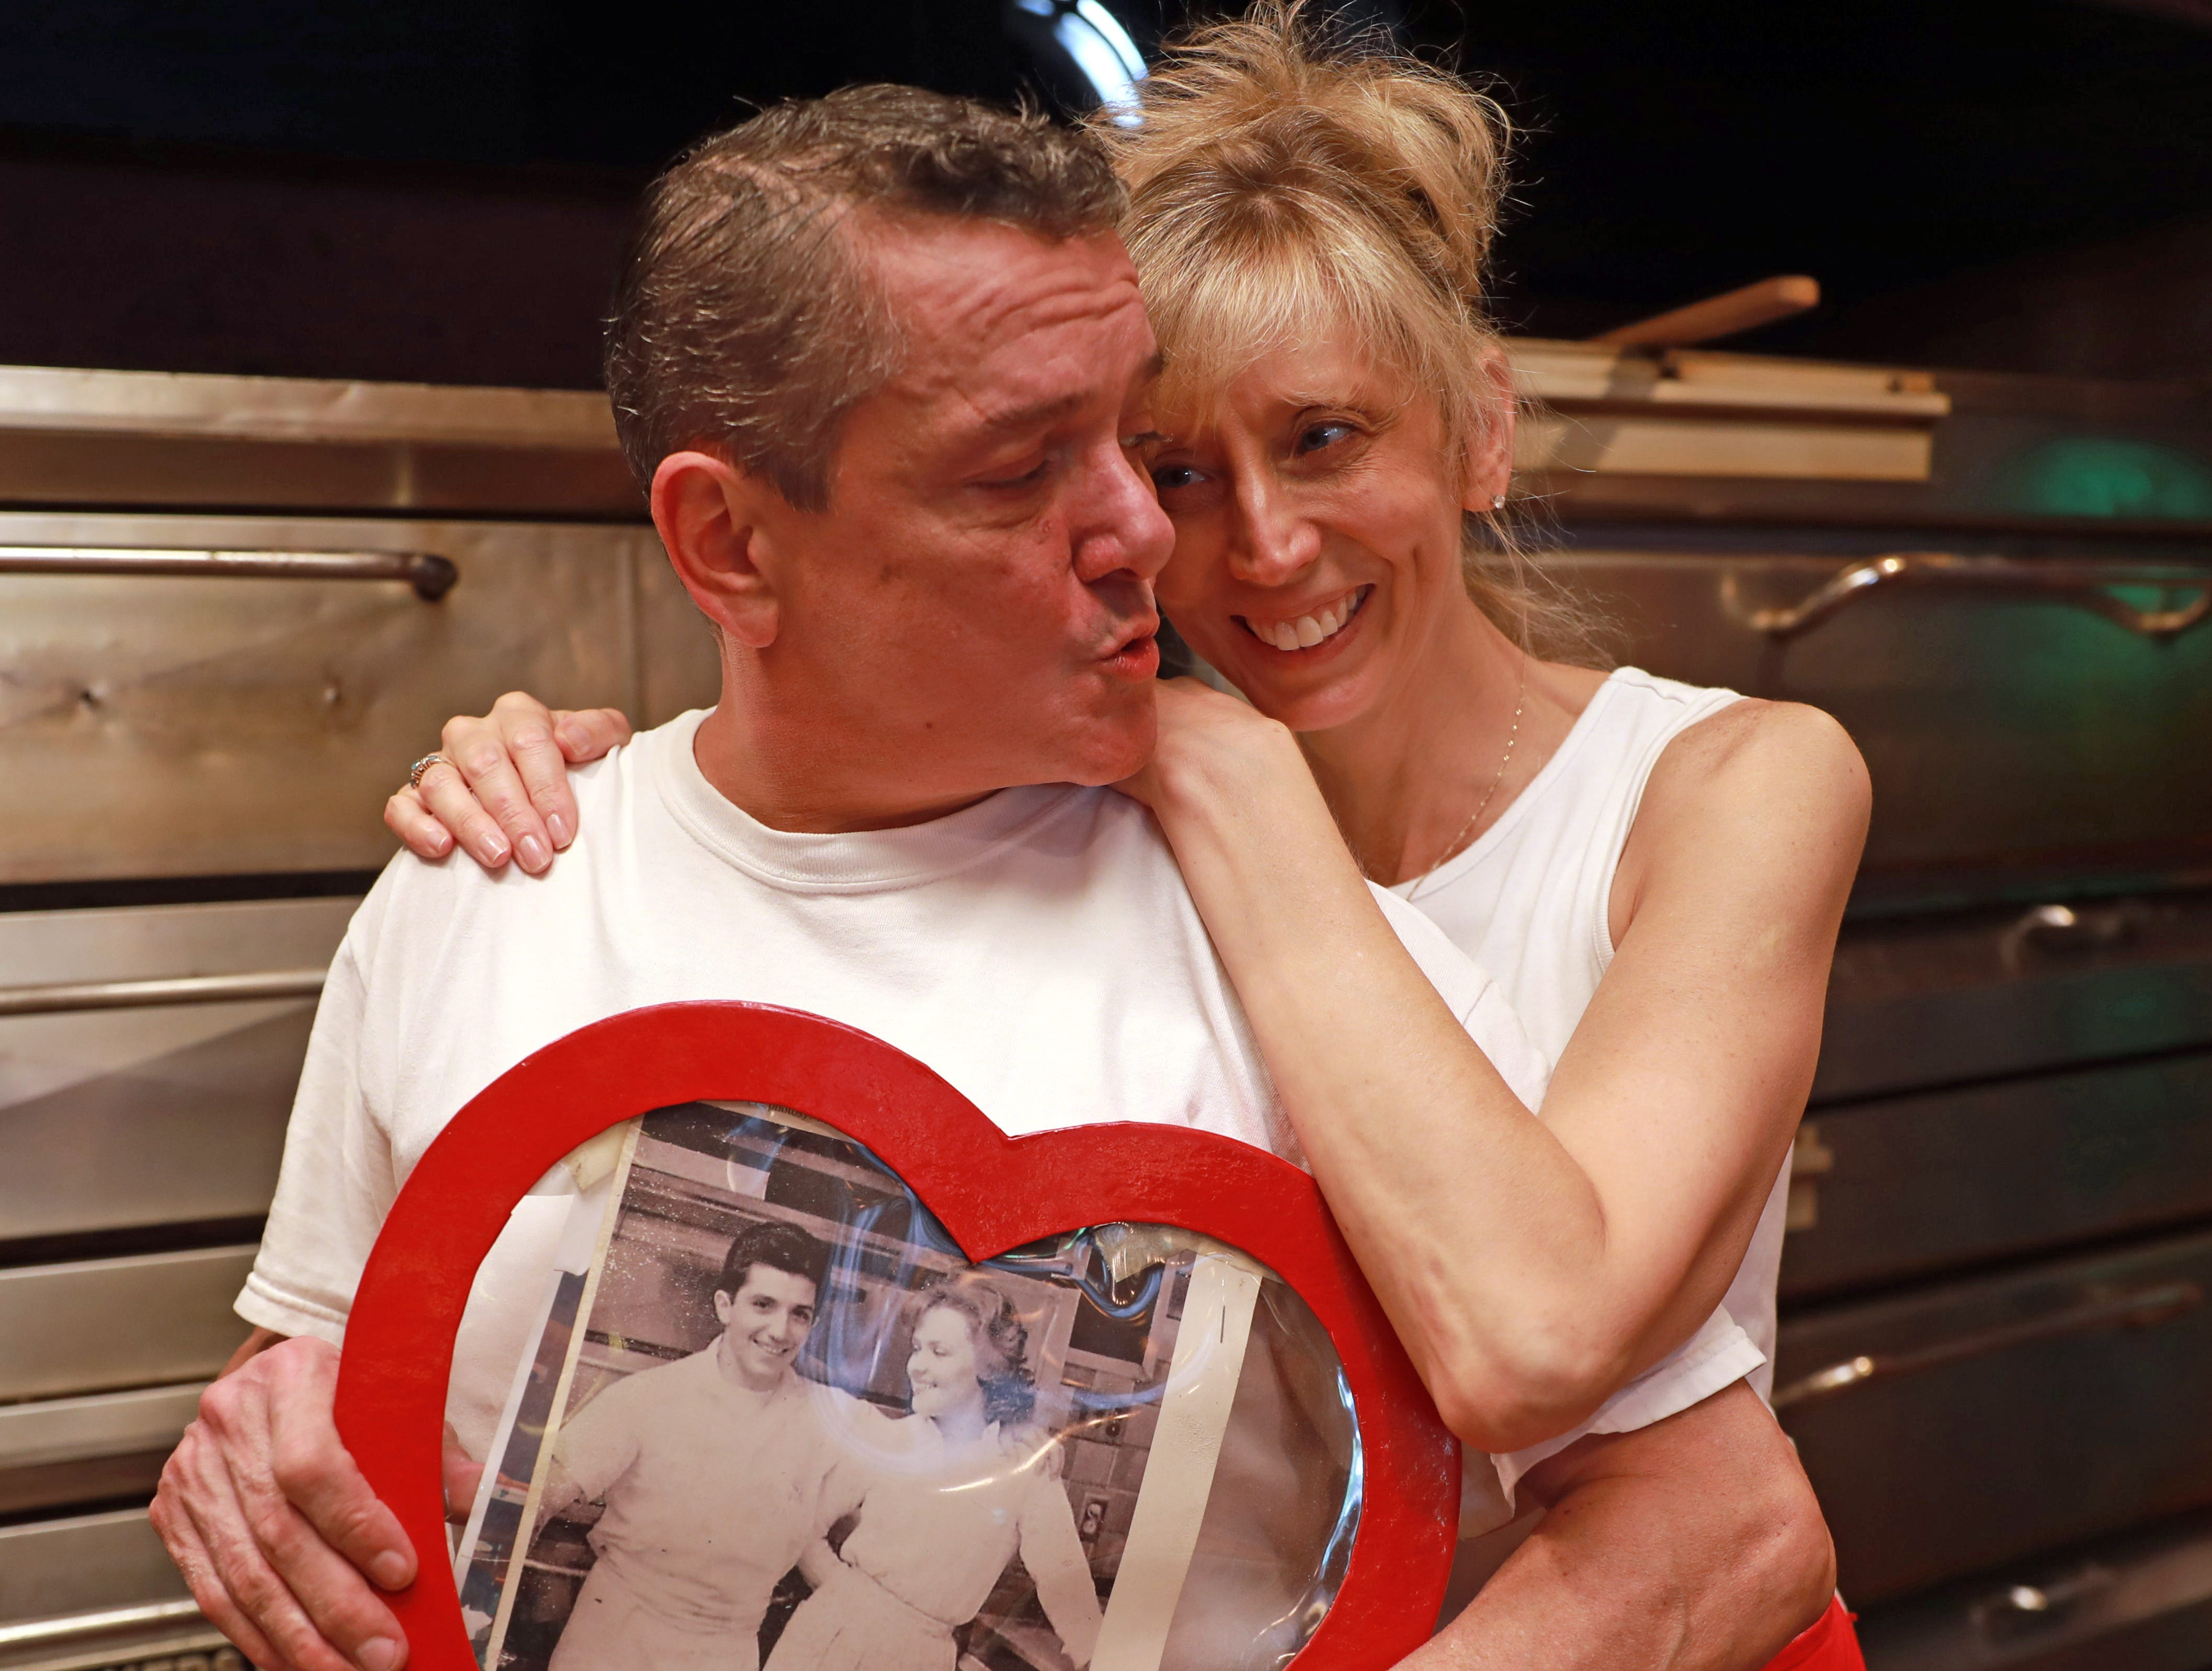 """Frankie Colandrea, the owner of Martio's Pizza in Nanuet on Aug. 21, 2018, kisses his wife, Cindy while holding a photo of his parents, Frank """"Martio"""" and Lois Colandrea, who founded the place in 1958 in Spring Valley before moving it to Nanuet in 1975."""